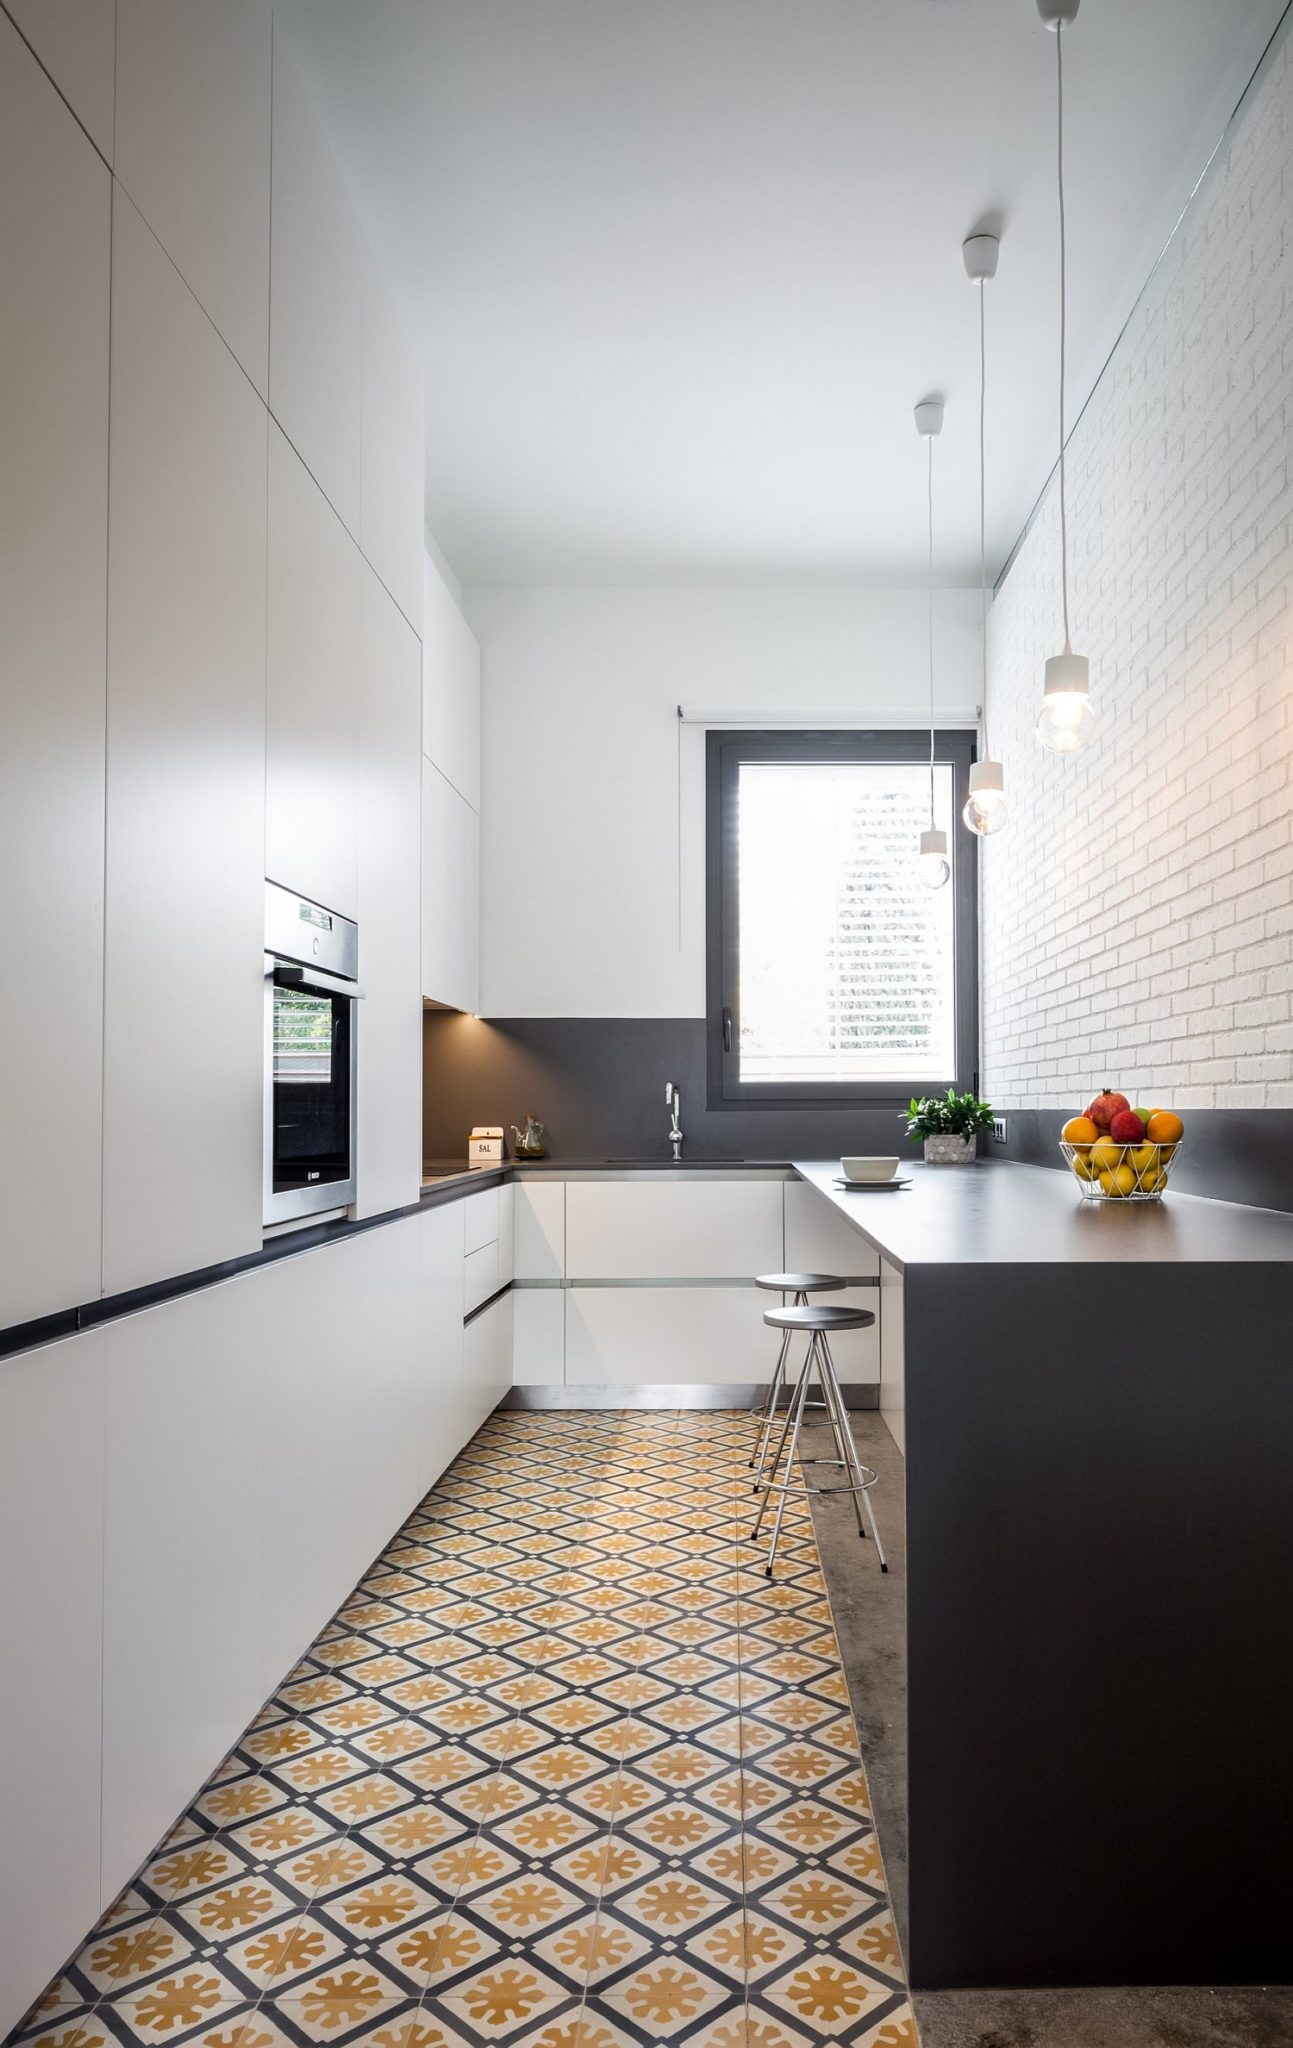 Floor-tiles-bring-color-and-pattern-to-contemporary-kitchen-in-white